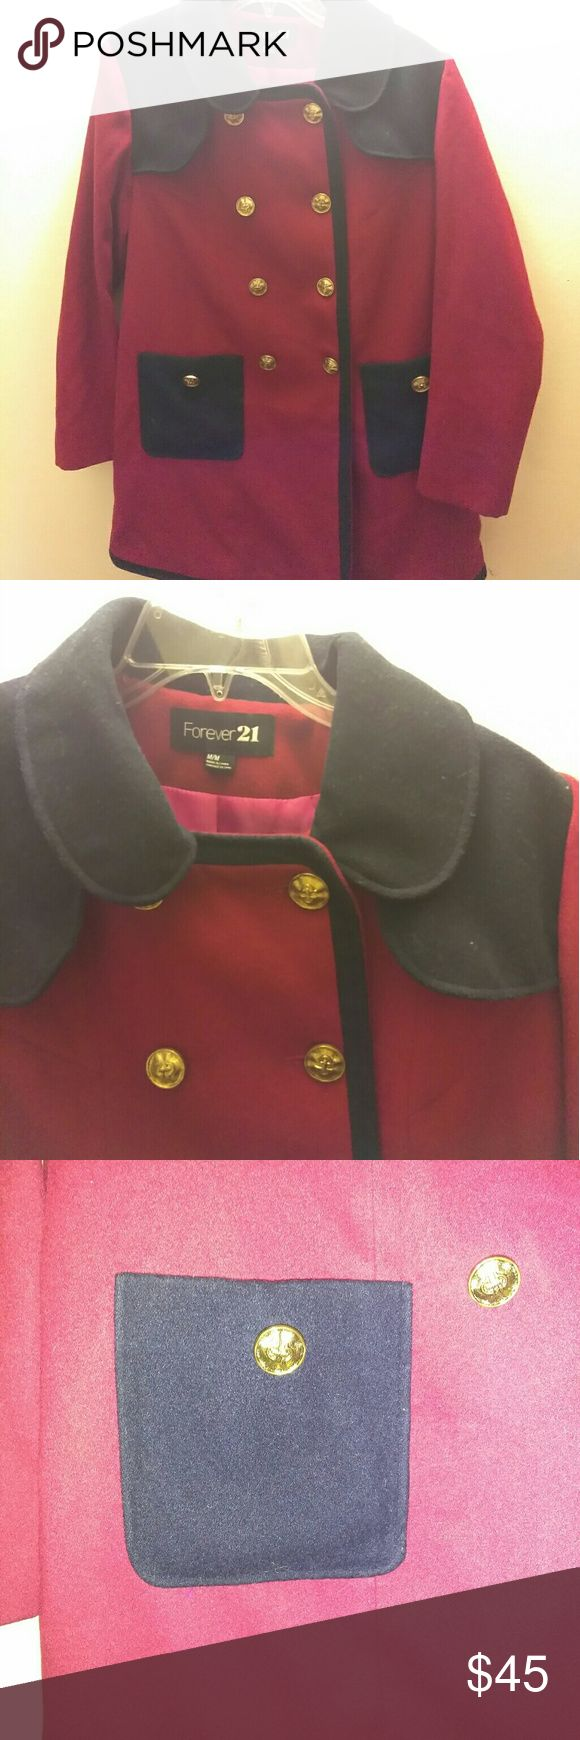 """Forever 21 Nautical Peacoat Red and Navy with gold button and hot pink interior, excellent condition but small white mark on inside lapel (see last picture), as seen on Sorry Deschanel as Jessica Day on """"New Girl"""" Forever 21 Jackets & Coats Pea Coats"""